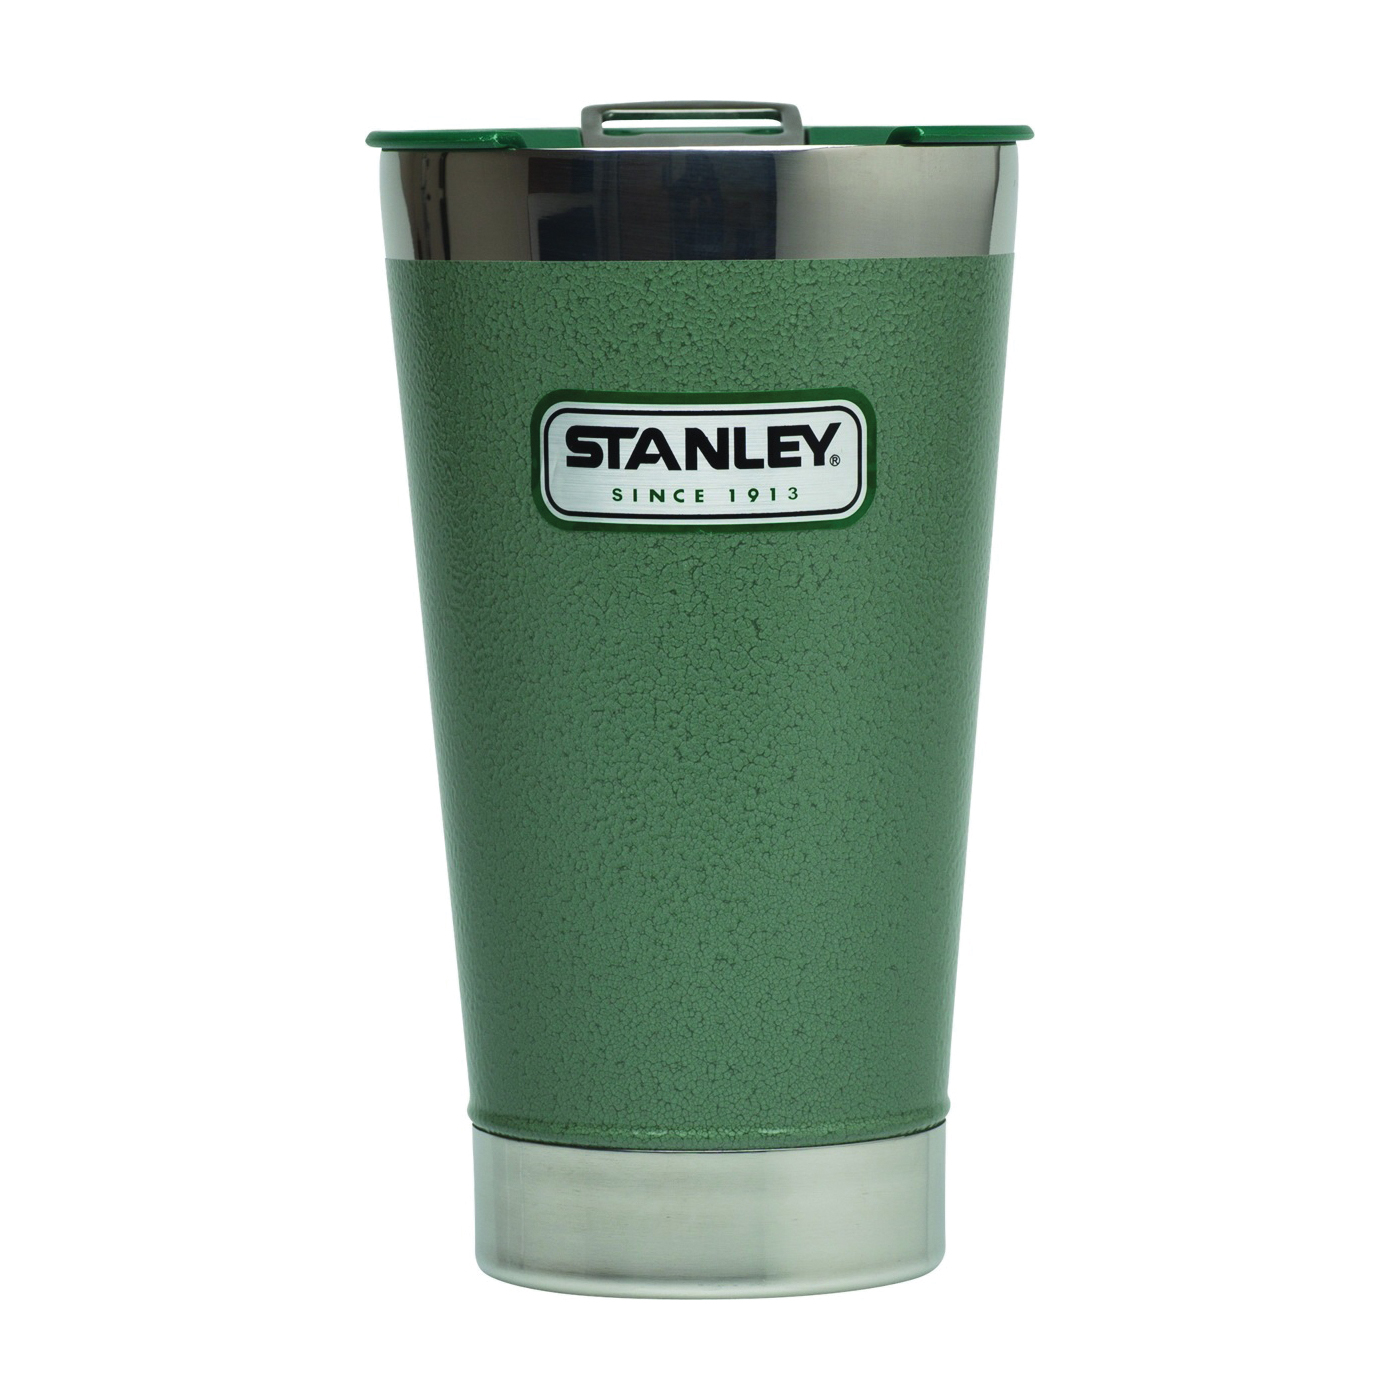 Picture of STANLEY 10-01704-001 Vacuum Pint, 16 oz Capacity, Stainless Steel, Hammertone Green